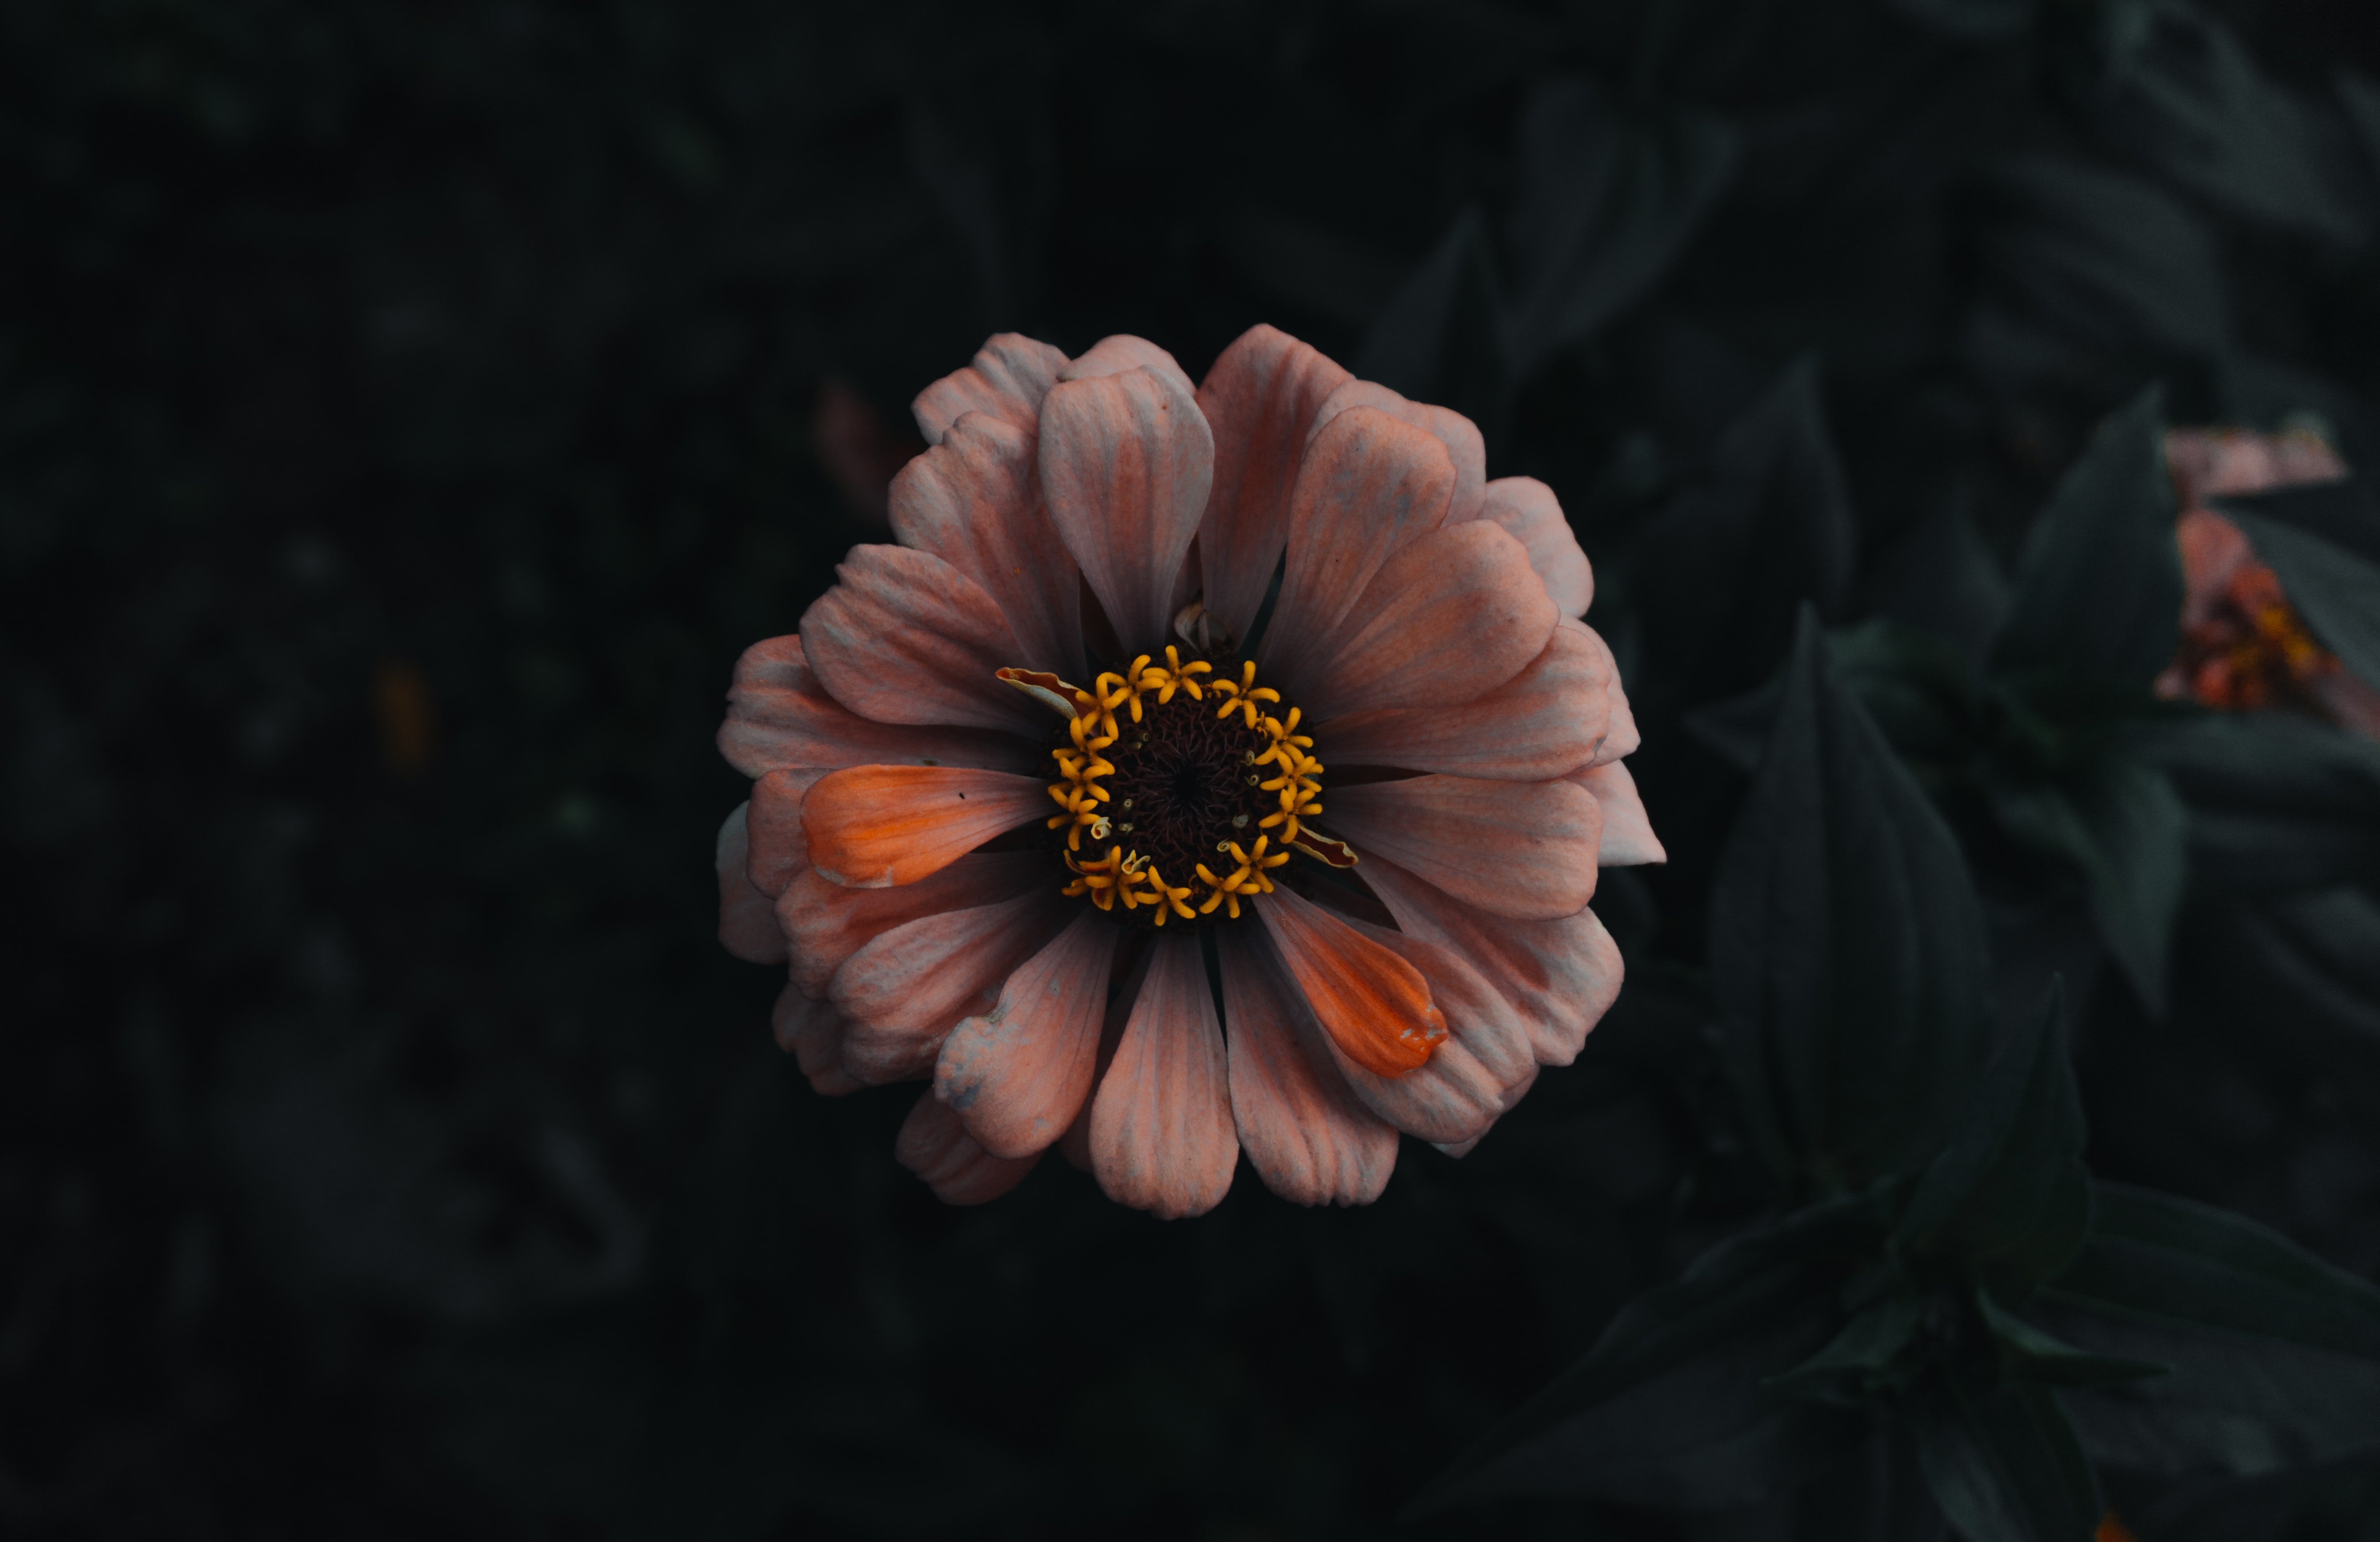 orange and white petaled flower